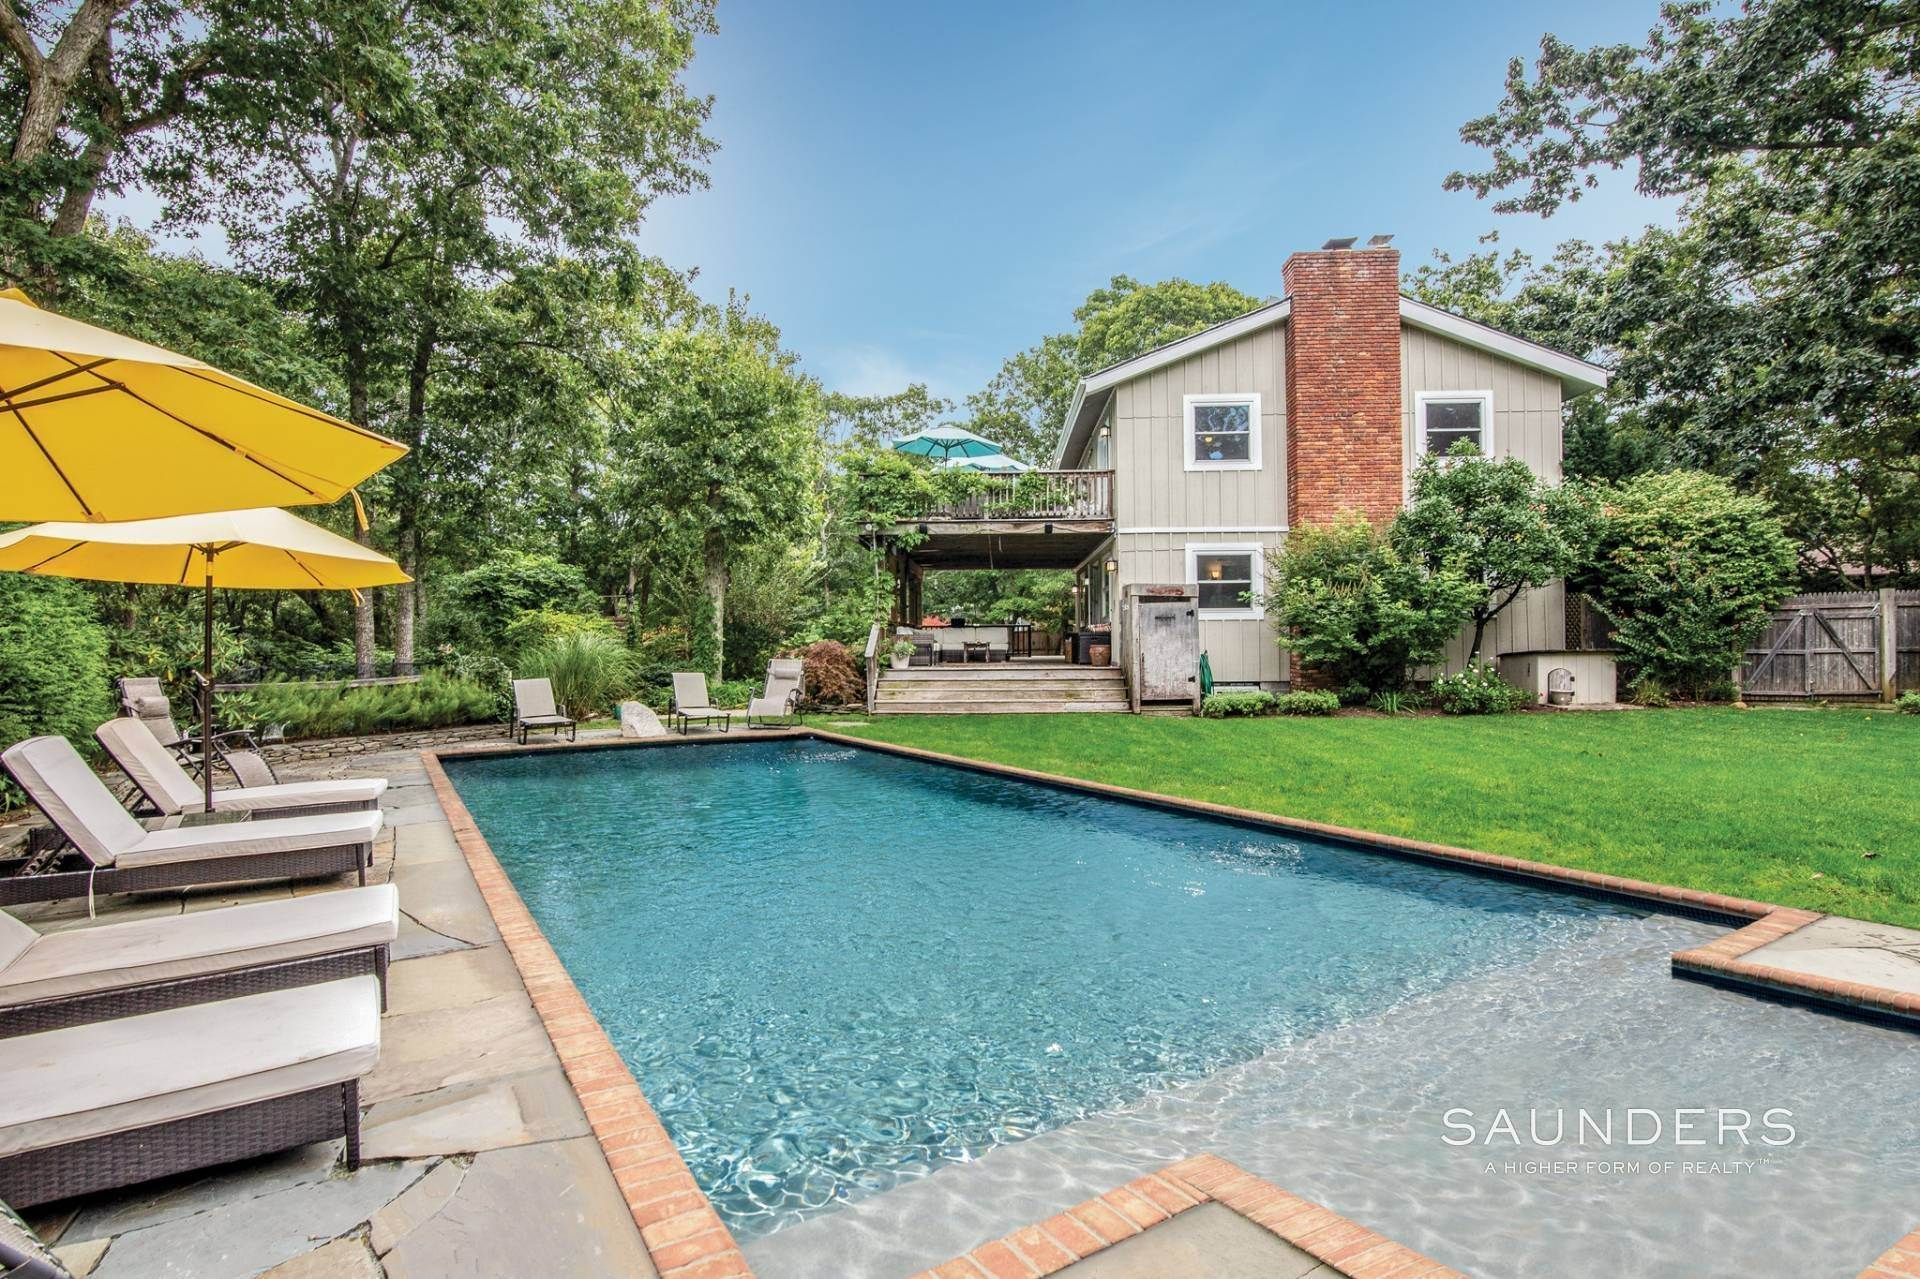 Single Family Homes for Sale at Lion Head With Beach, Sunsets And A Pool 26 Orkney Road, East Hampton, East Hampton Town, NY 11937